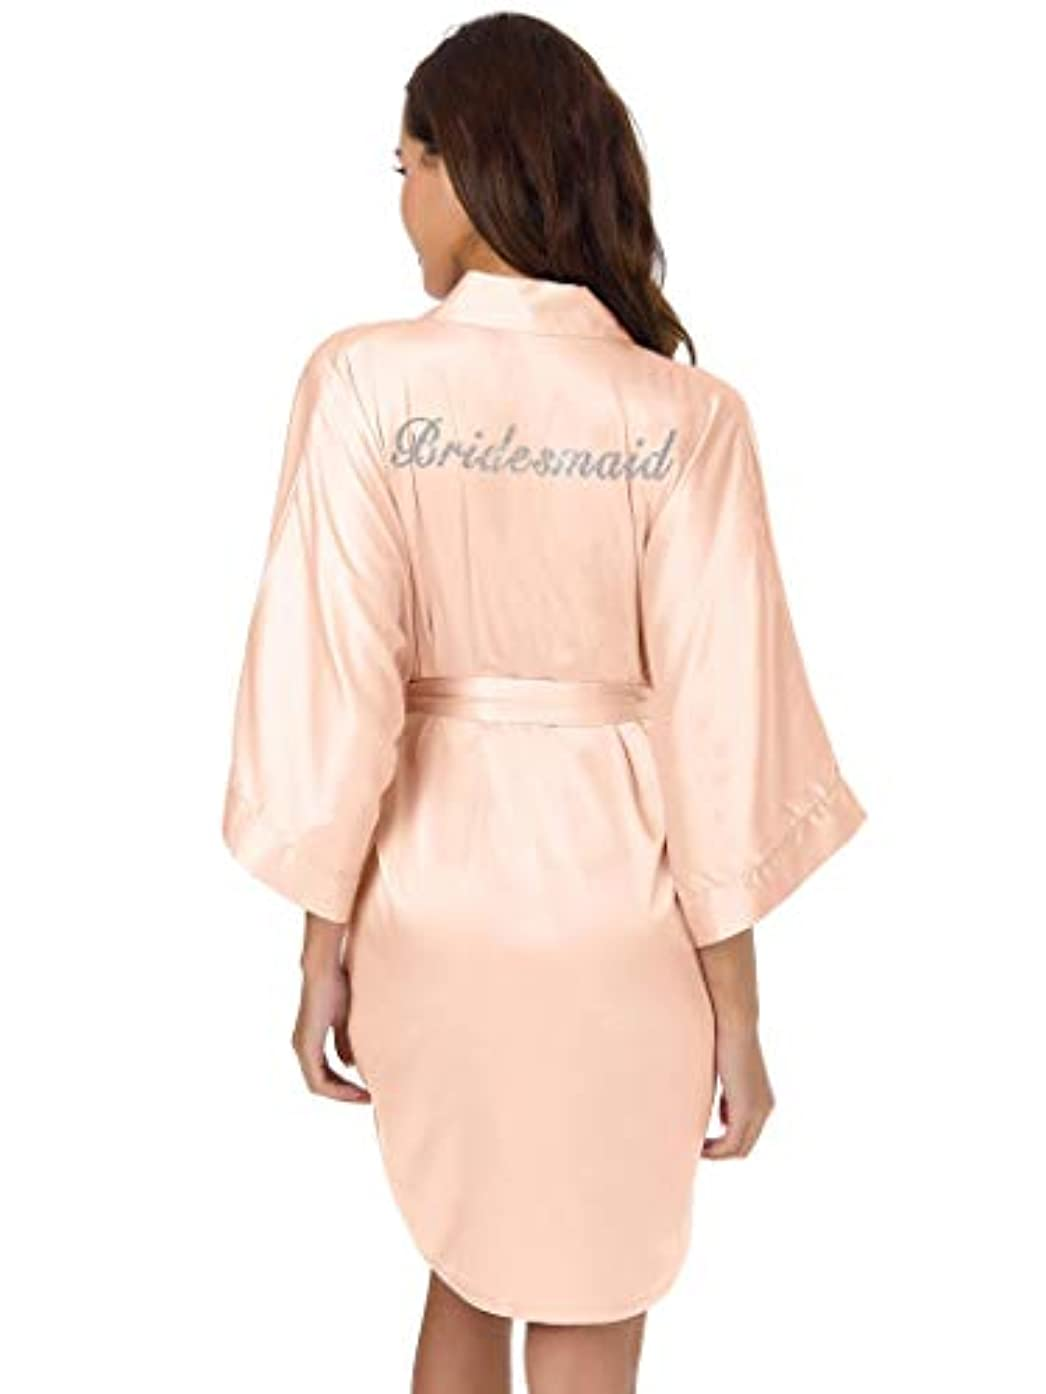 SIORO Personalized Bride Bridesmaid Robes,Womens Satin Bathrobe for Wedding Party